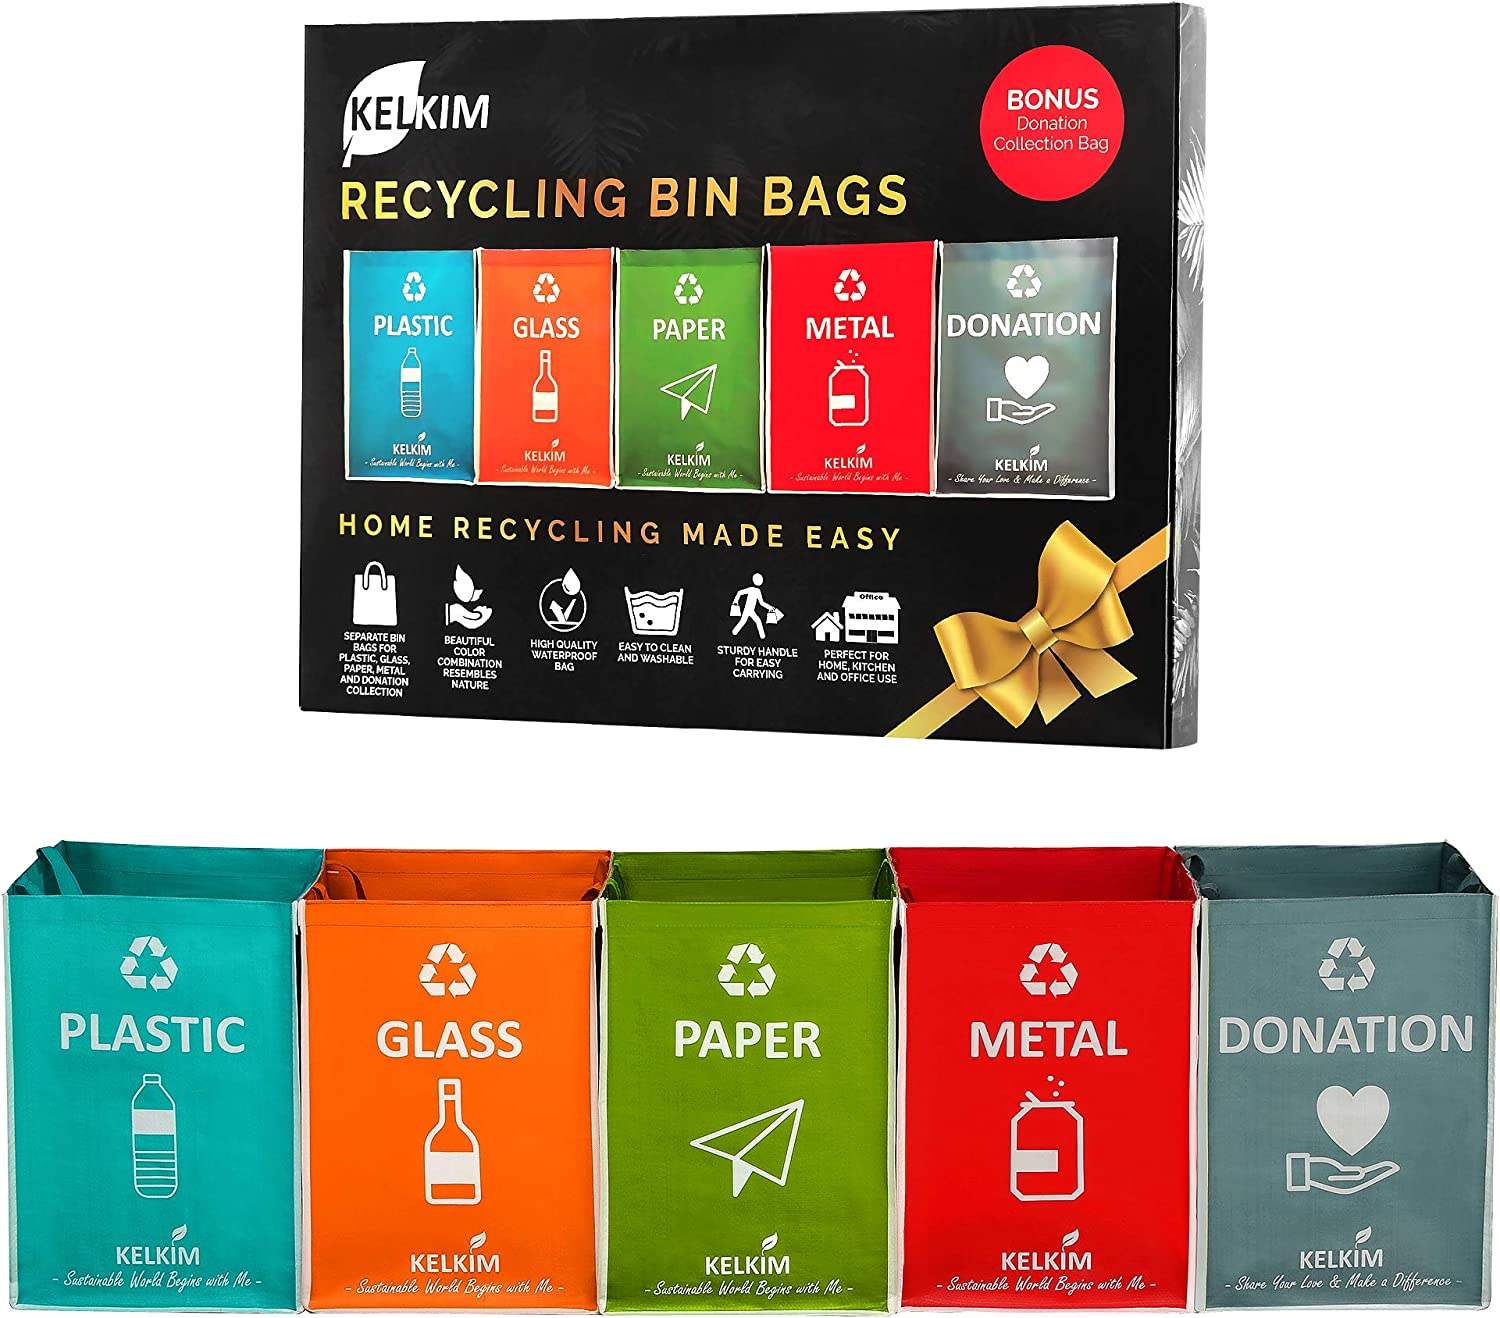 Recycling Bin Bags + Donation Bag for Home Kitchen Office | Portable Indoor Recycle Waste Organizer | Waterproof Garbage Containers | Separate Recyclable Trash Sorting Bin | Big Compartment 5 Bags Set